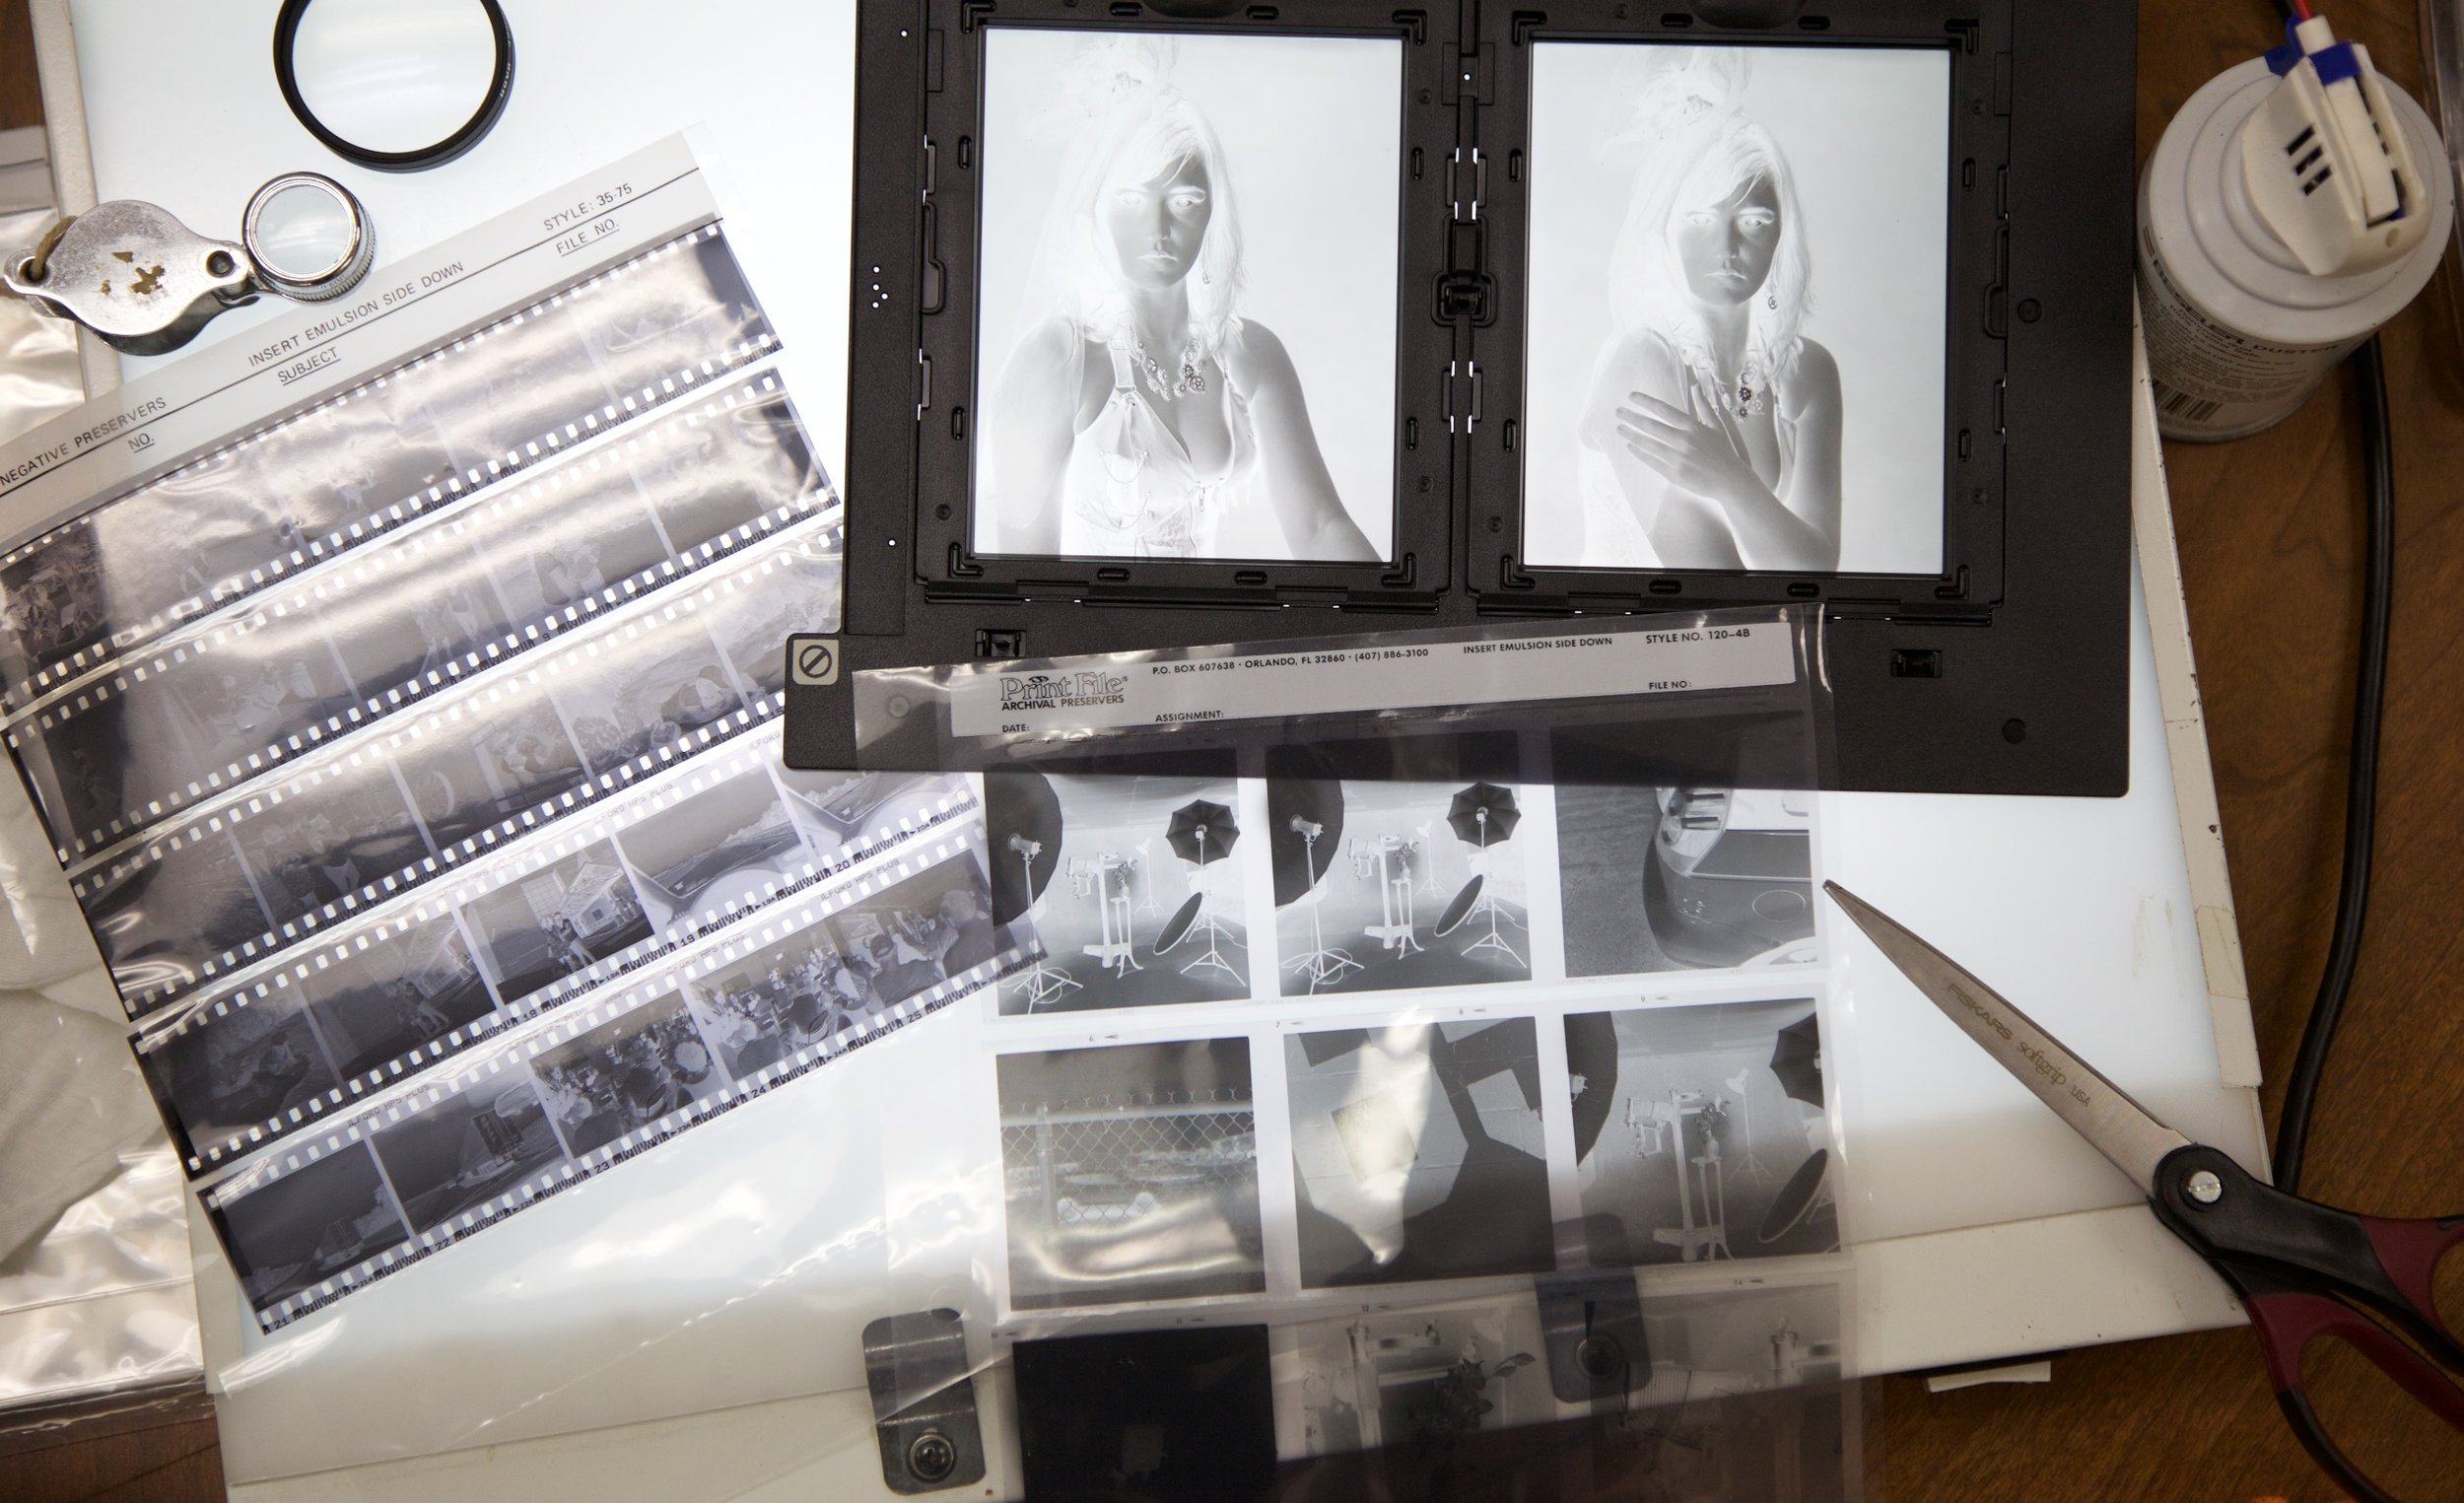 35mm, 120 and 4x5 negatives - tangible images all!